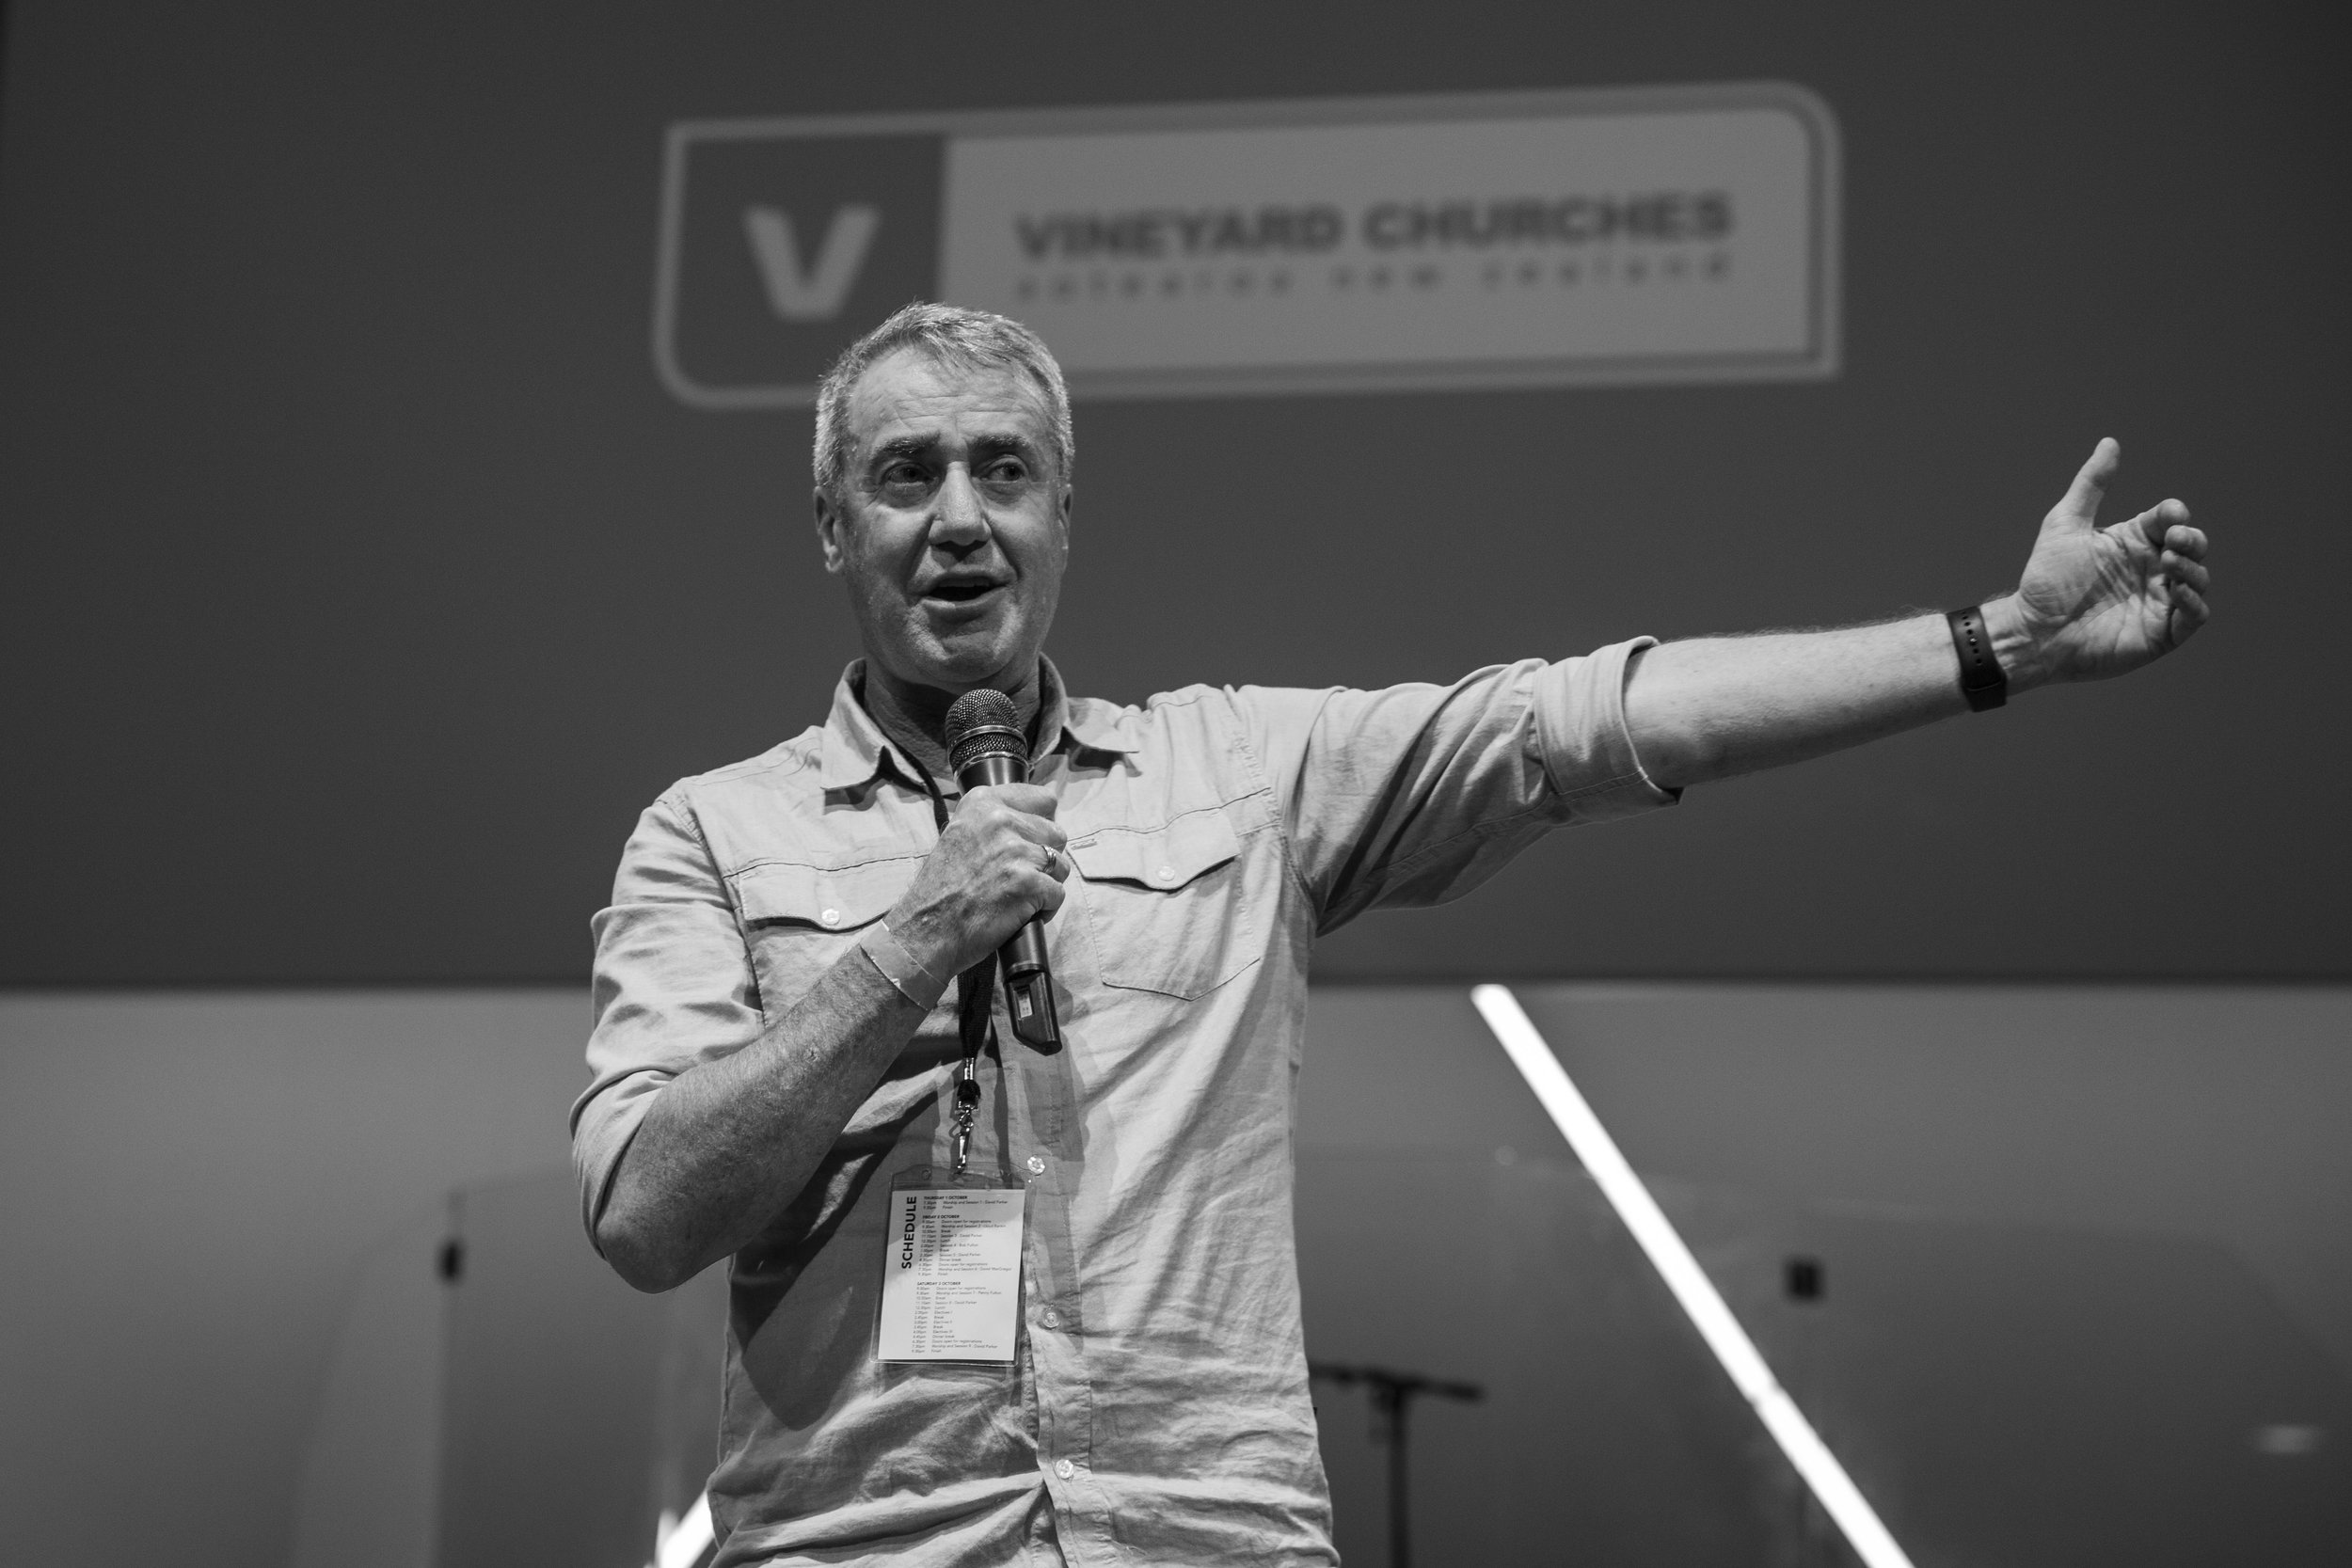 Lloyd Rankin, national director of  Vineyard Churches Aotearoa NZ , is coming to speak on Sunday, November 13. Lloyd and his wife Victoria pioneered the Vineyard movement here in NZ and have planted several churches over the last two decades.